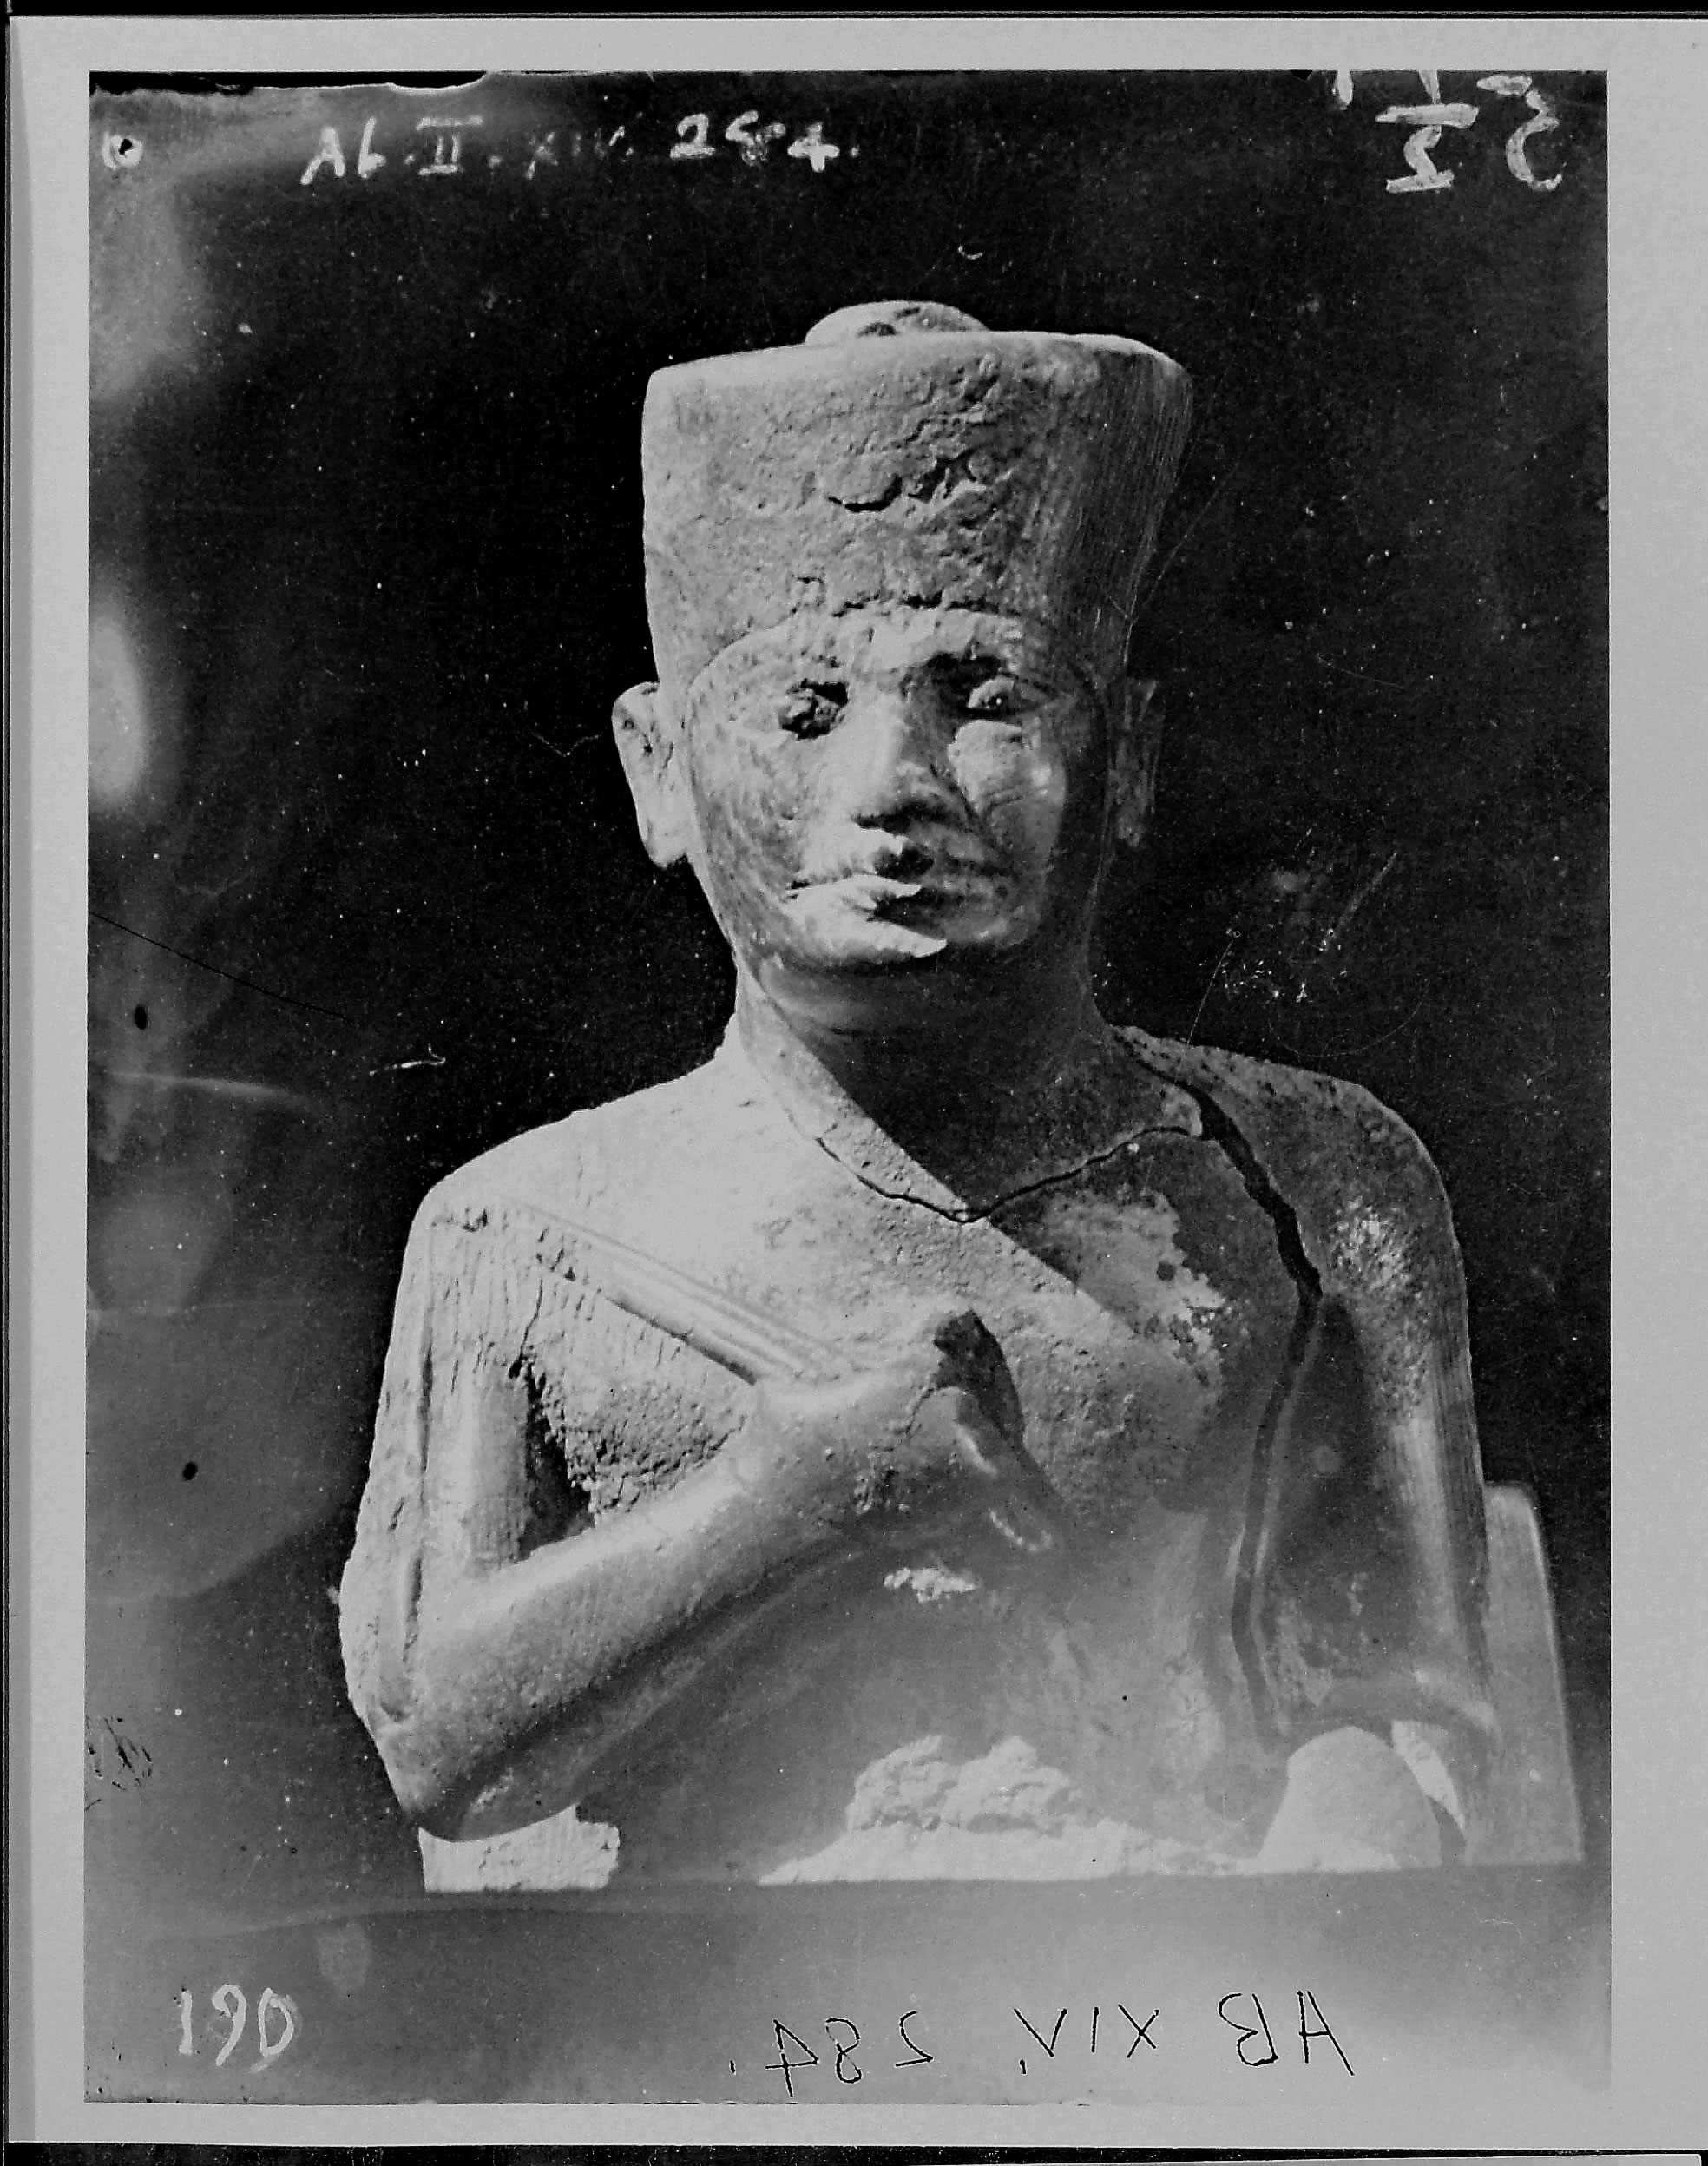 Fig. 2. Flinders Petrie's original image of this extraordinary find, taken during the 1902-1903 field season at Abydos. Photo courtesy of the  Egypt Exploration Society